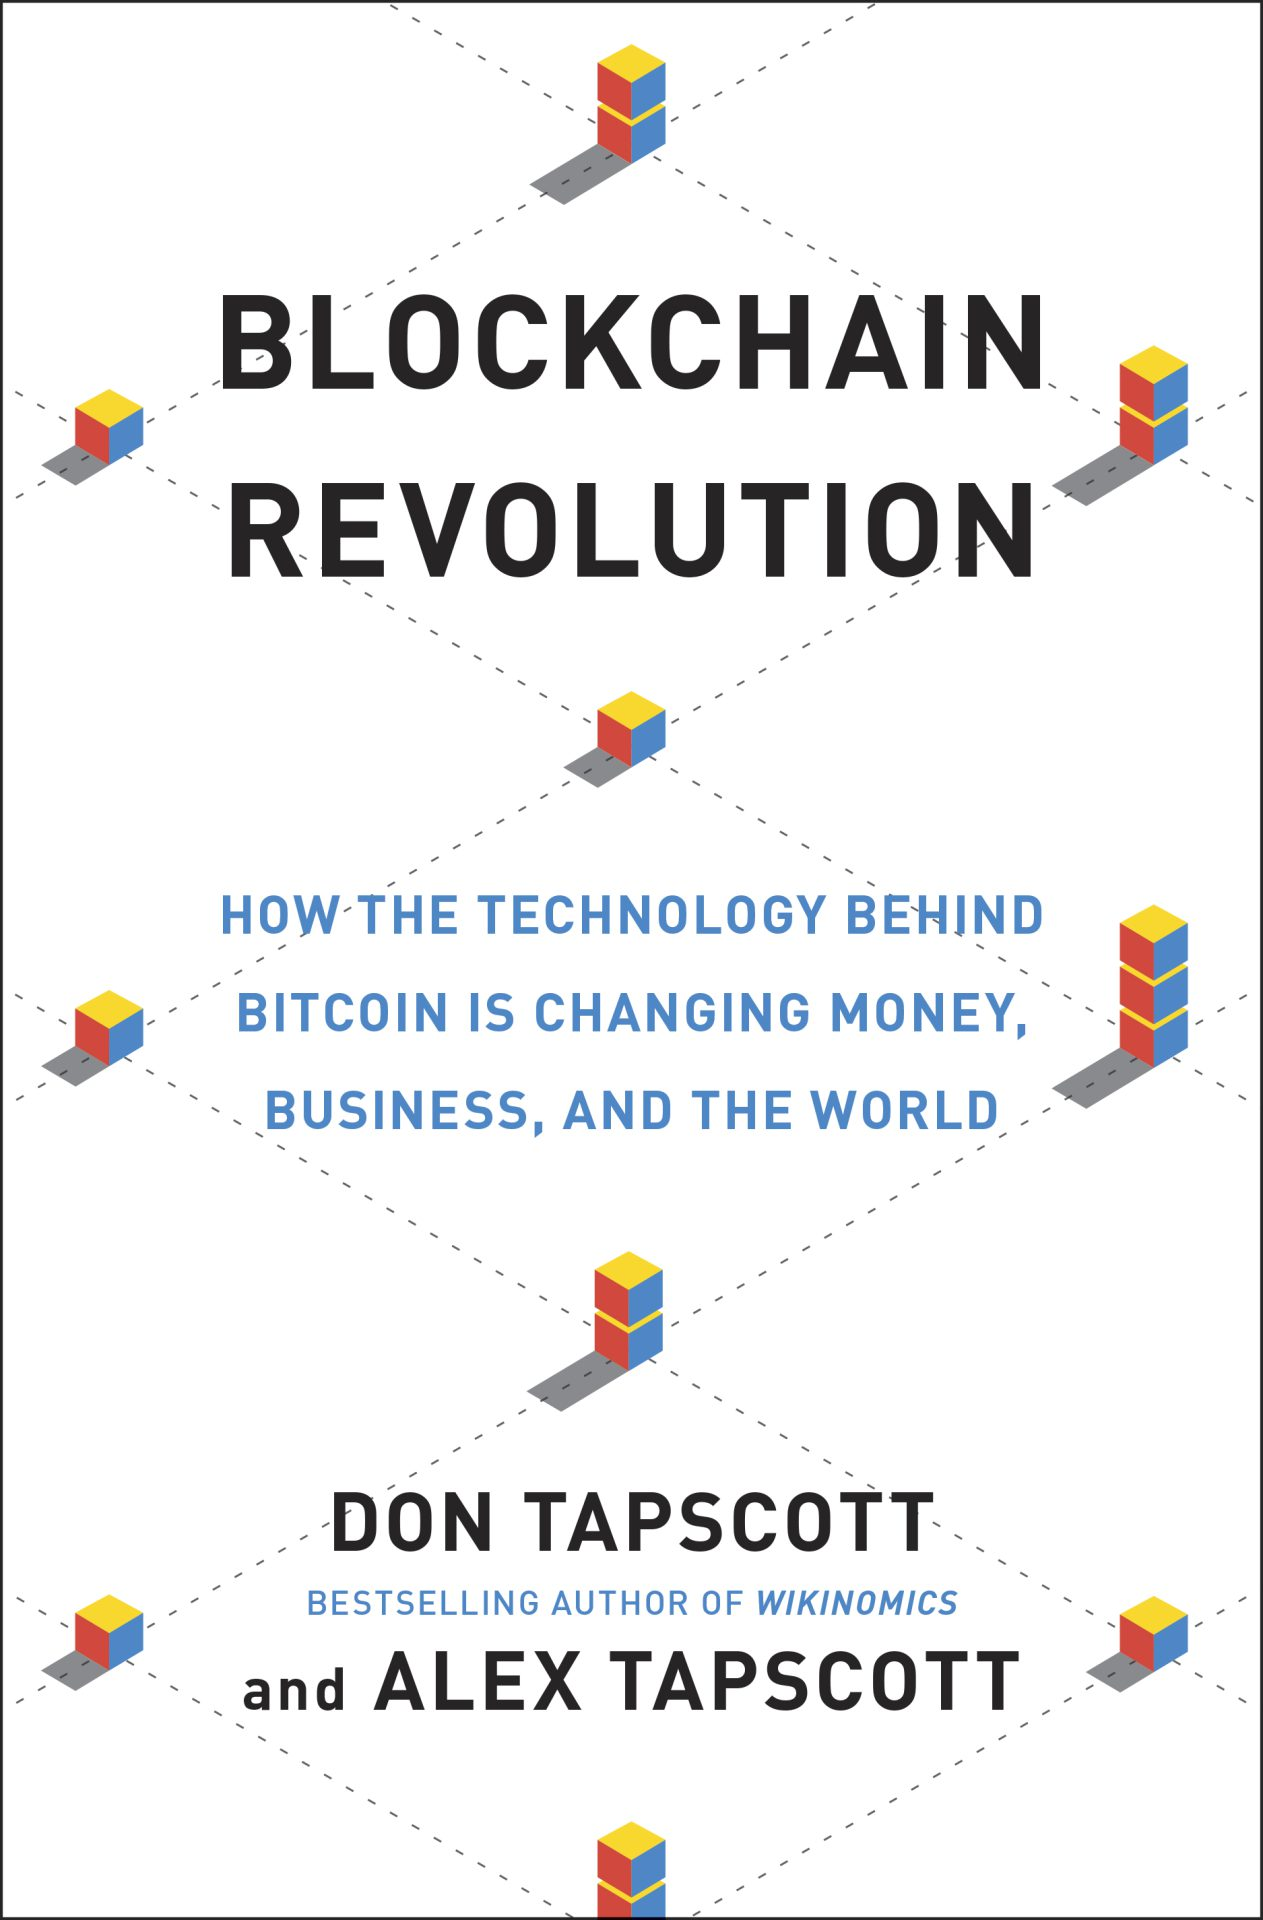 Blockchain revolution 2016 don tapscott blockchain revolution 2016 malvernweather Choice Image